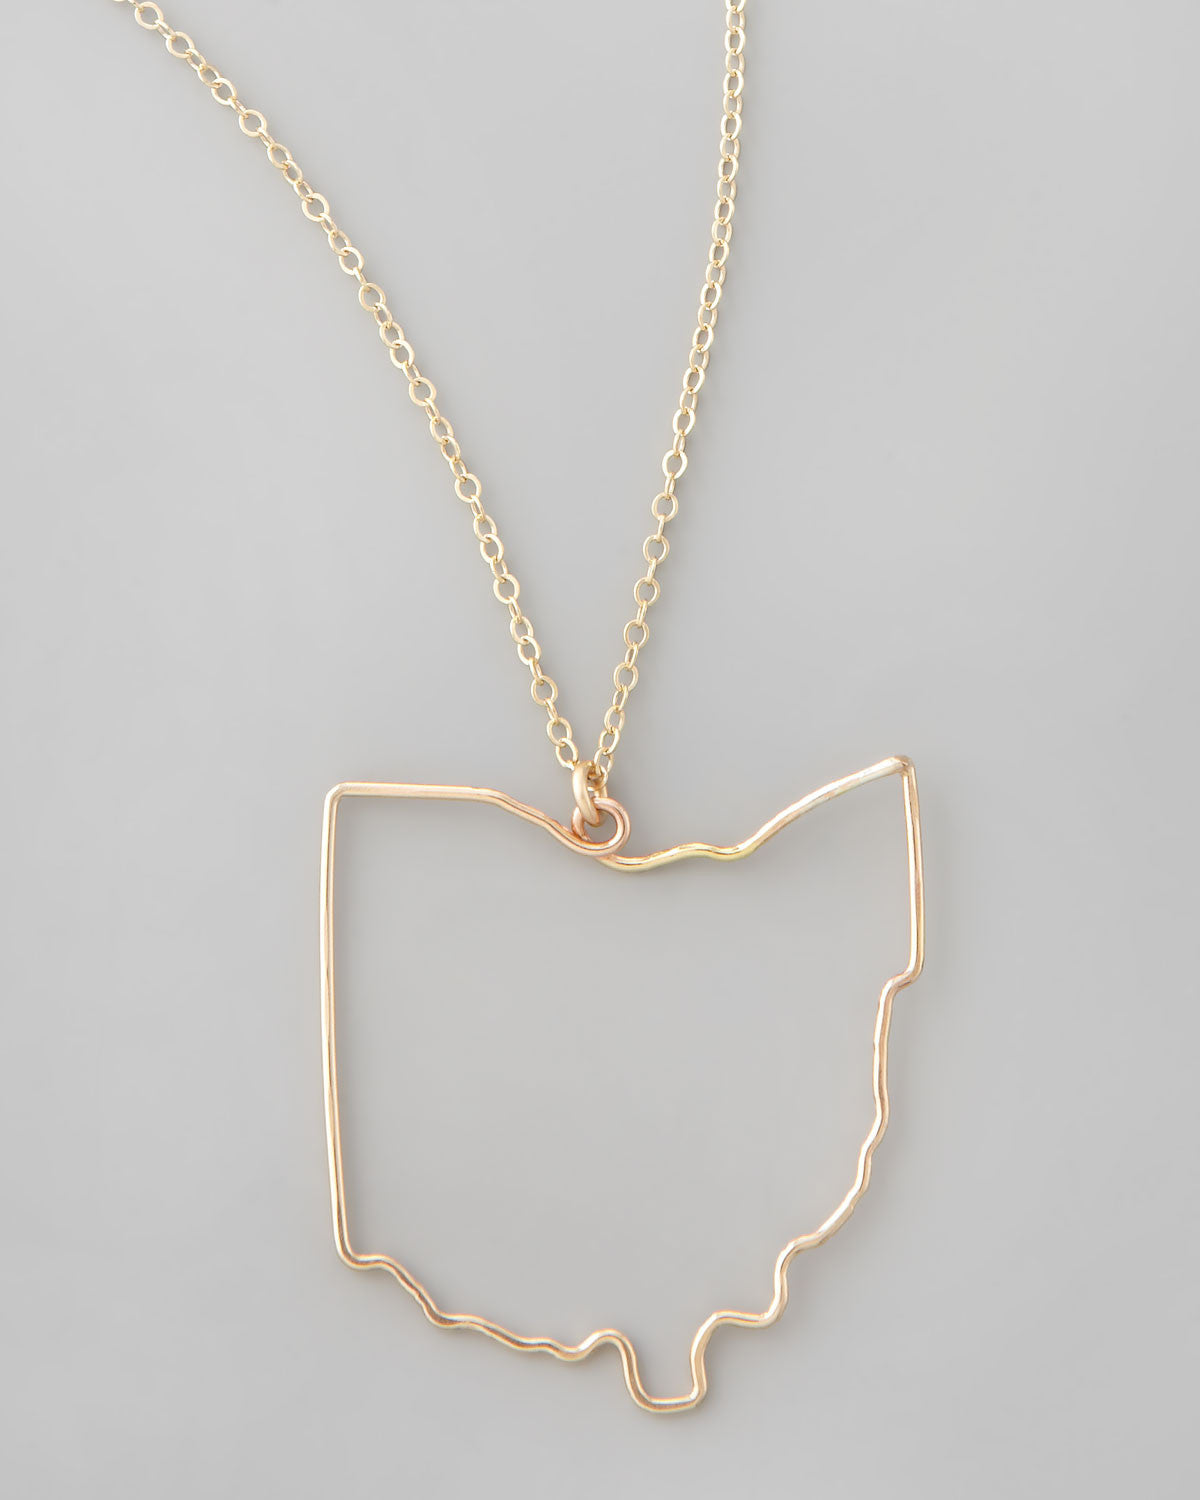 Gauge nyc ohio state pendant necklace favery gold ohio state pendant necklace aloadofball Gallery